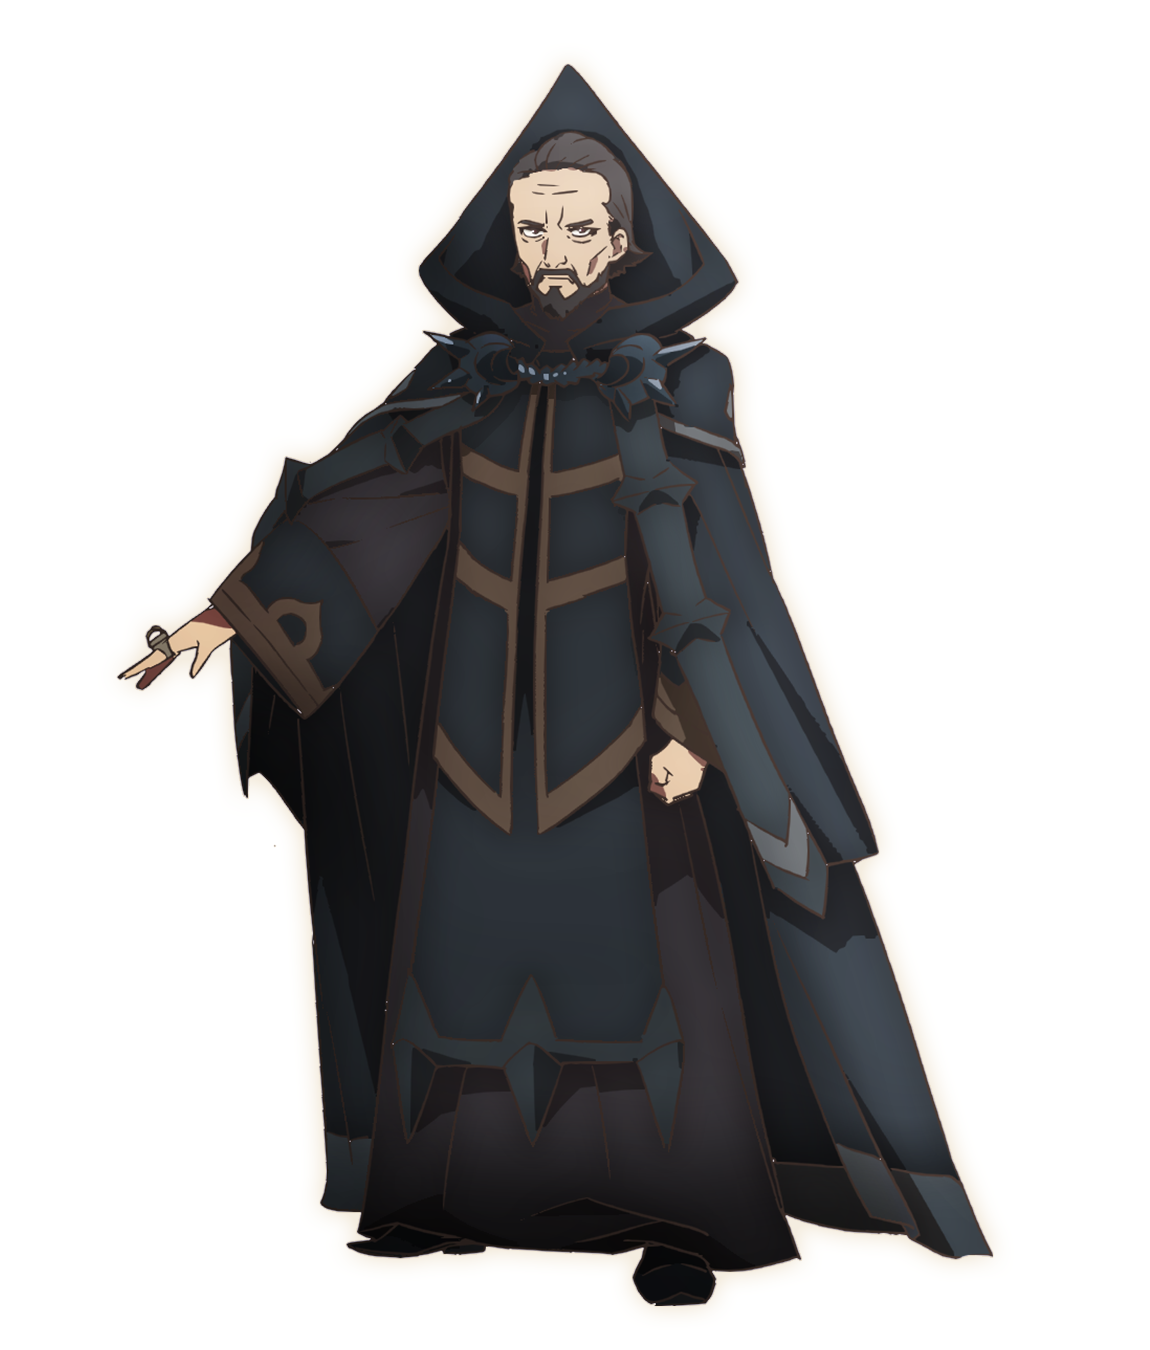 A character setting of Germain from the SEVEN KNIGHTS REVOLUTION: Hero Successor TV anime. Germain appears as a middle-aged man in dark wizard robes. He sports short hair and a finely trimmed mustache and goattee, but his face looks worn and hollowed by the years.